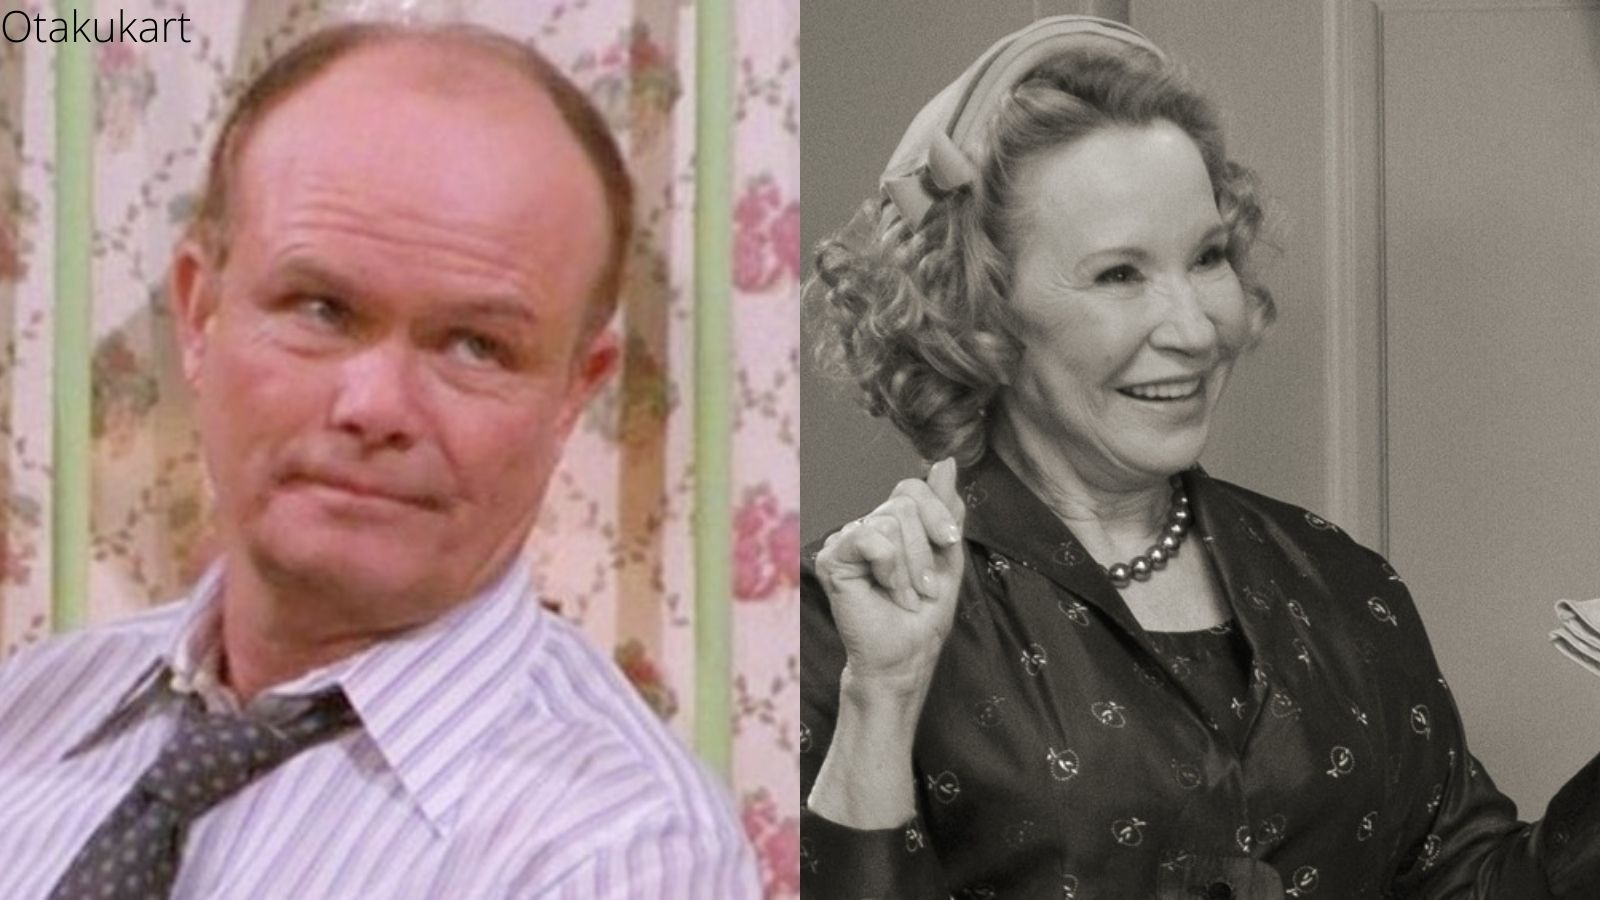 That 70s show spinoff That 90s show cast- Debra Jo Rupp and Kurtwood Smith